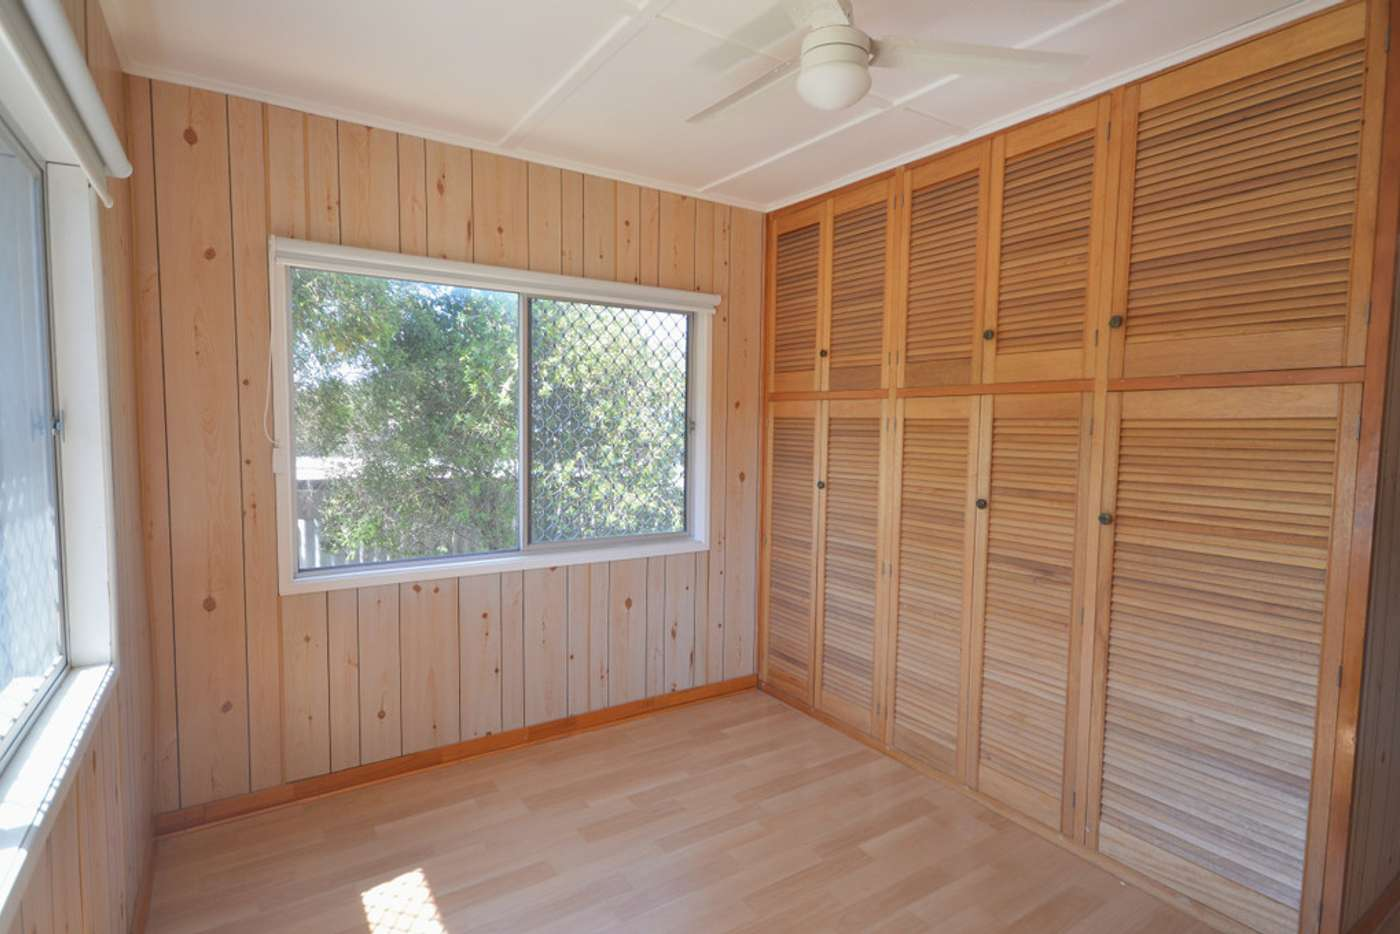 Sixth view of Homely house listing, 21 Gillam Street, Warwick QLD 4370